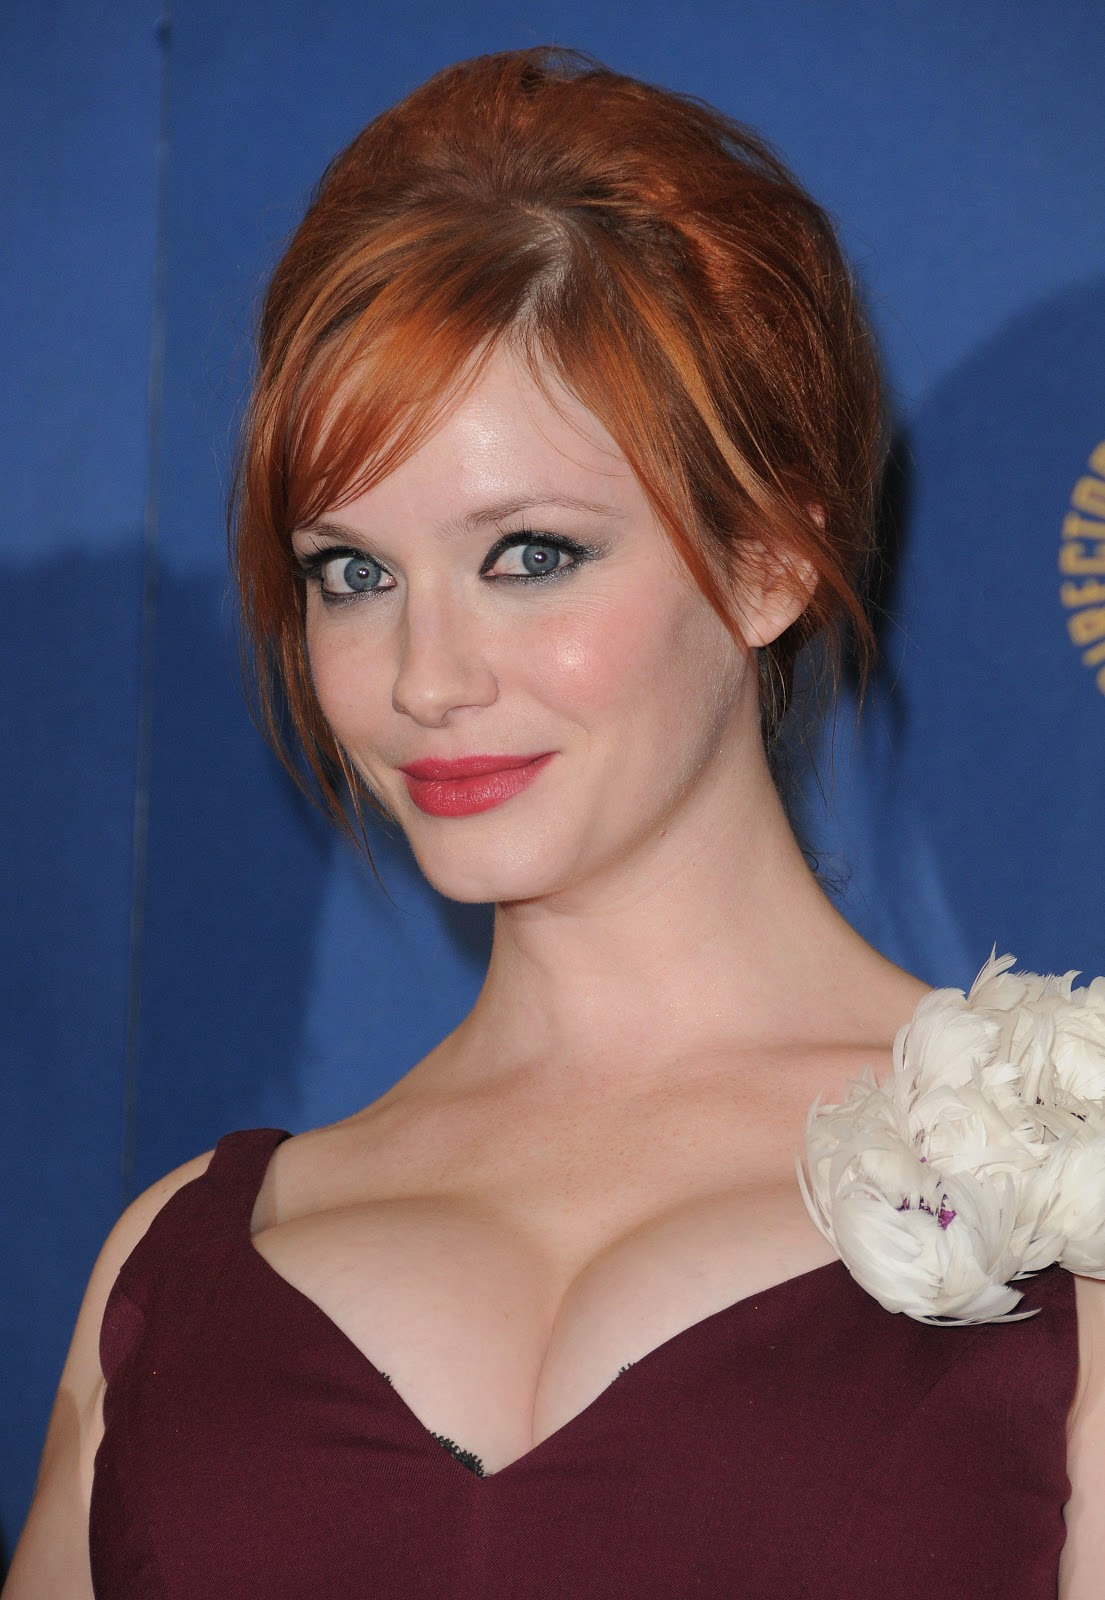 Christina Hendricks Boobs Nude